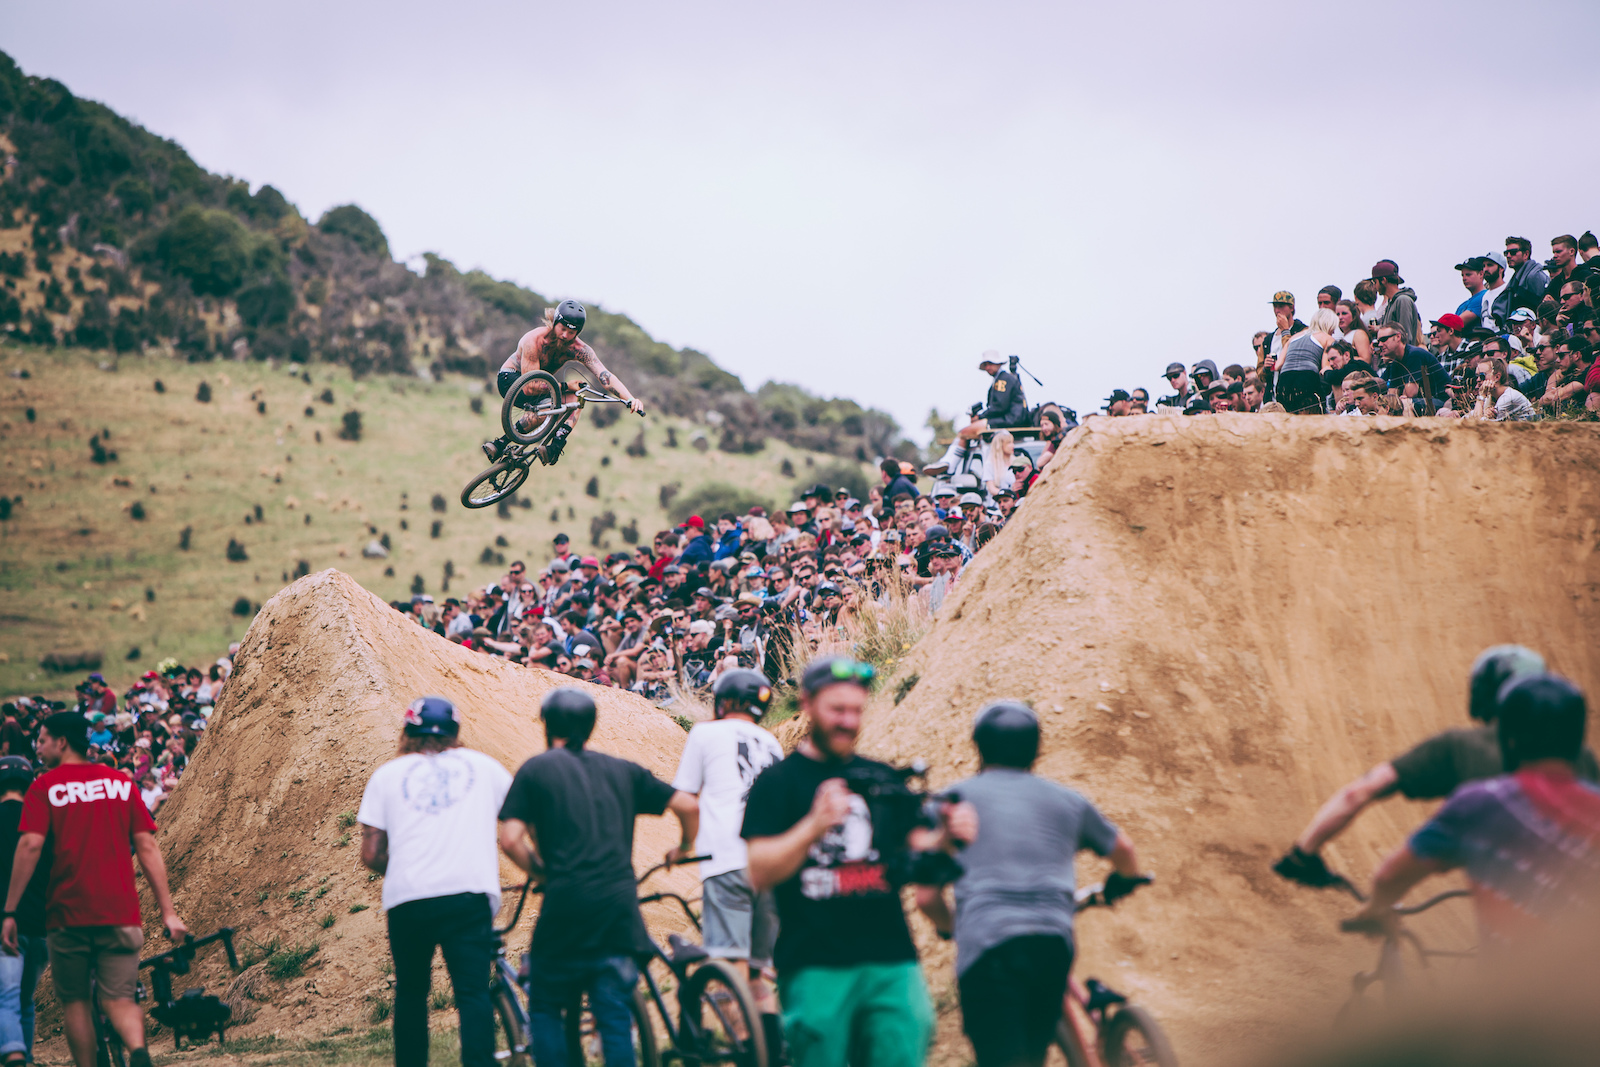 The crowds could get up close and personal with the riders